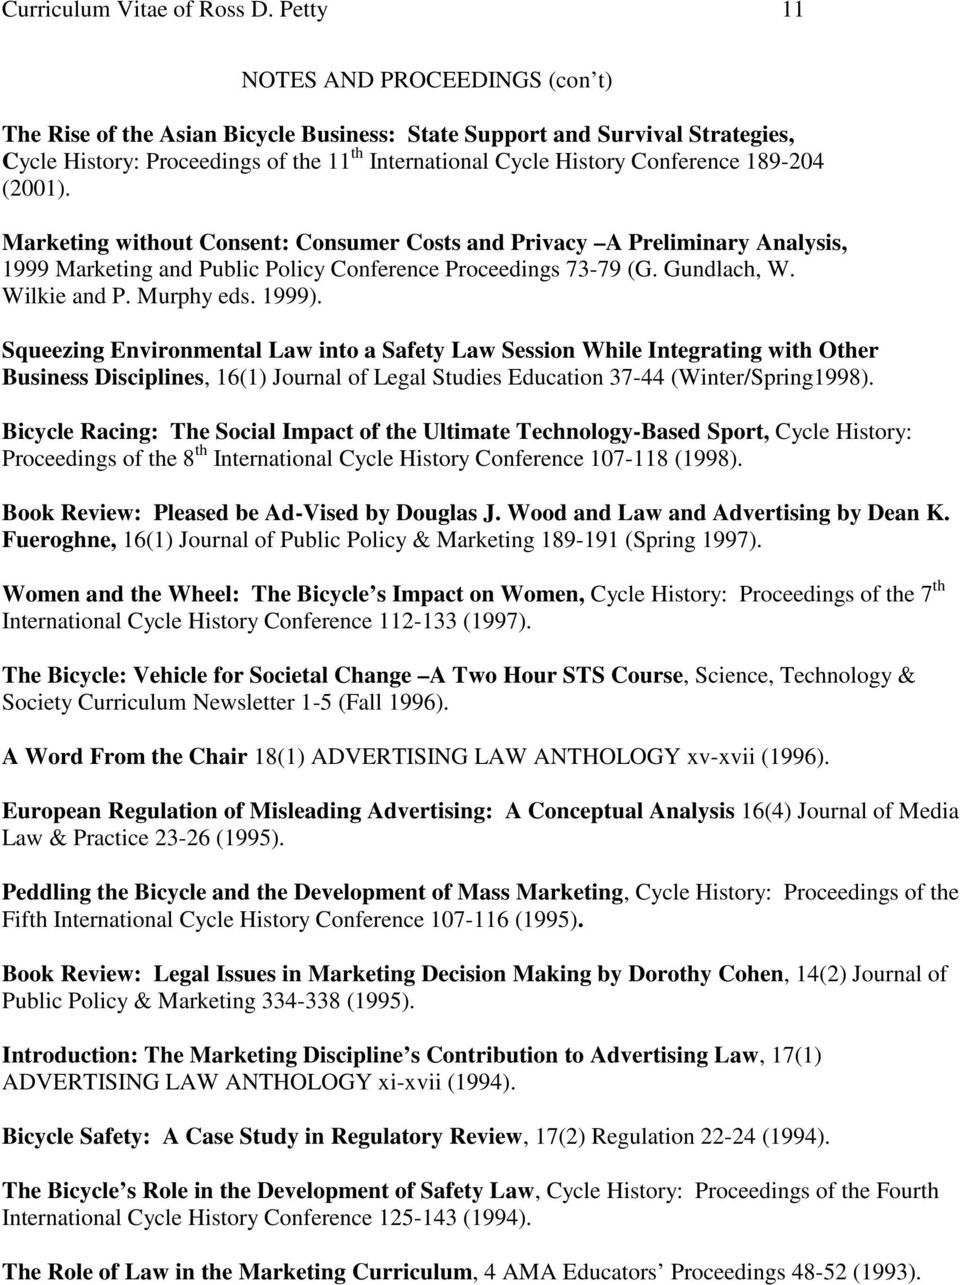 189-204 (2001). Marketing without Consent: Consumer Costs and Privacy A Preliminary Analysis, 1999 Marketing and Public Policy Conference Proceedings 73-79 (G. Gundlach, W. Wilkie and P. Murphy eds.